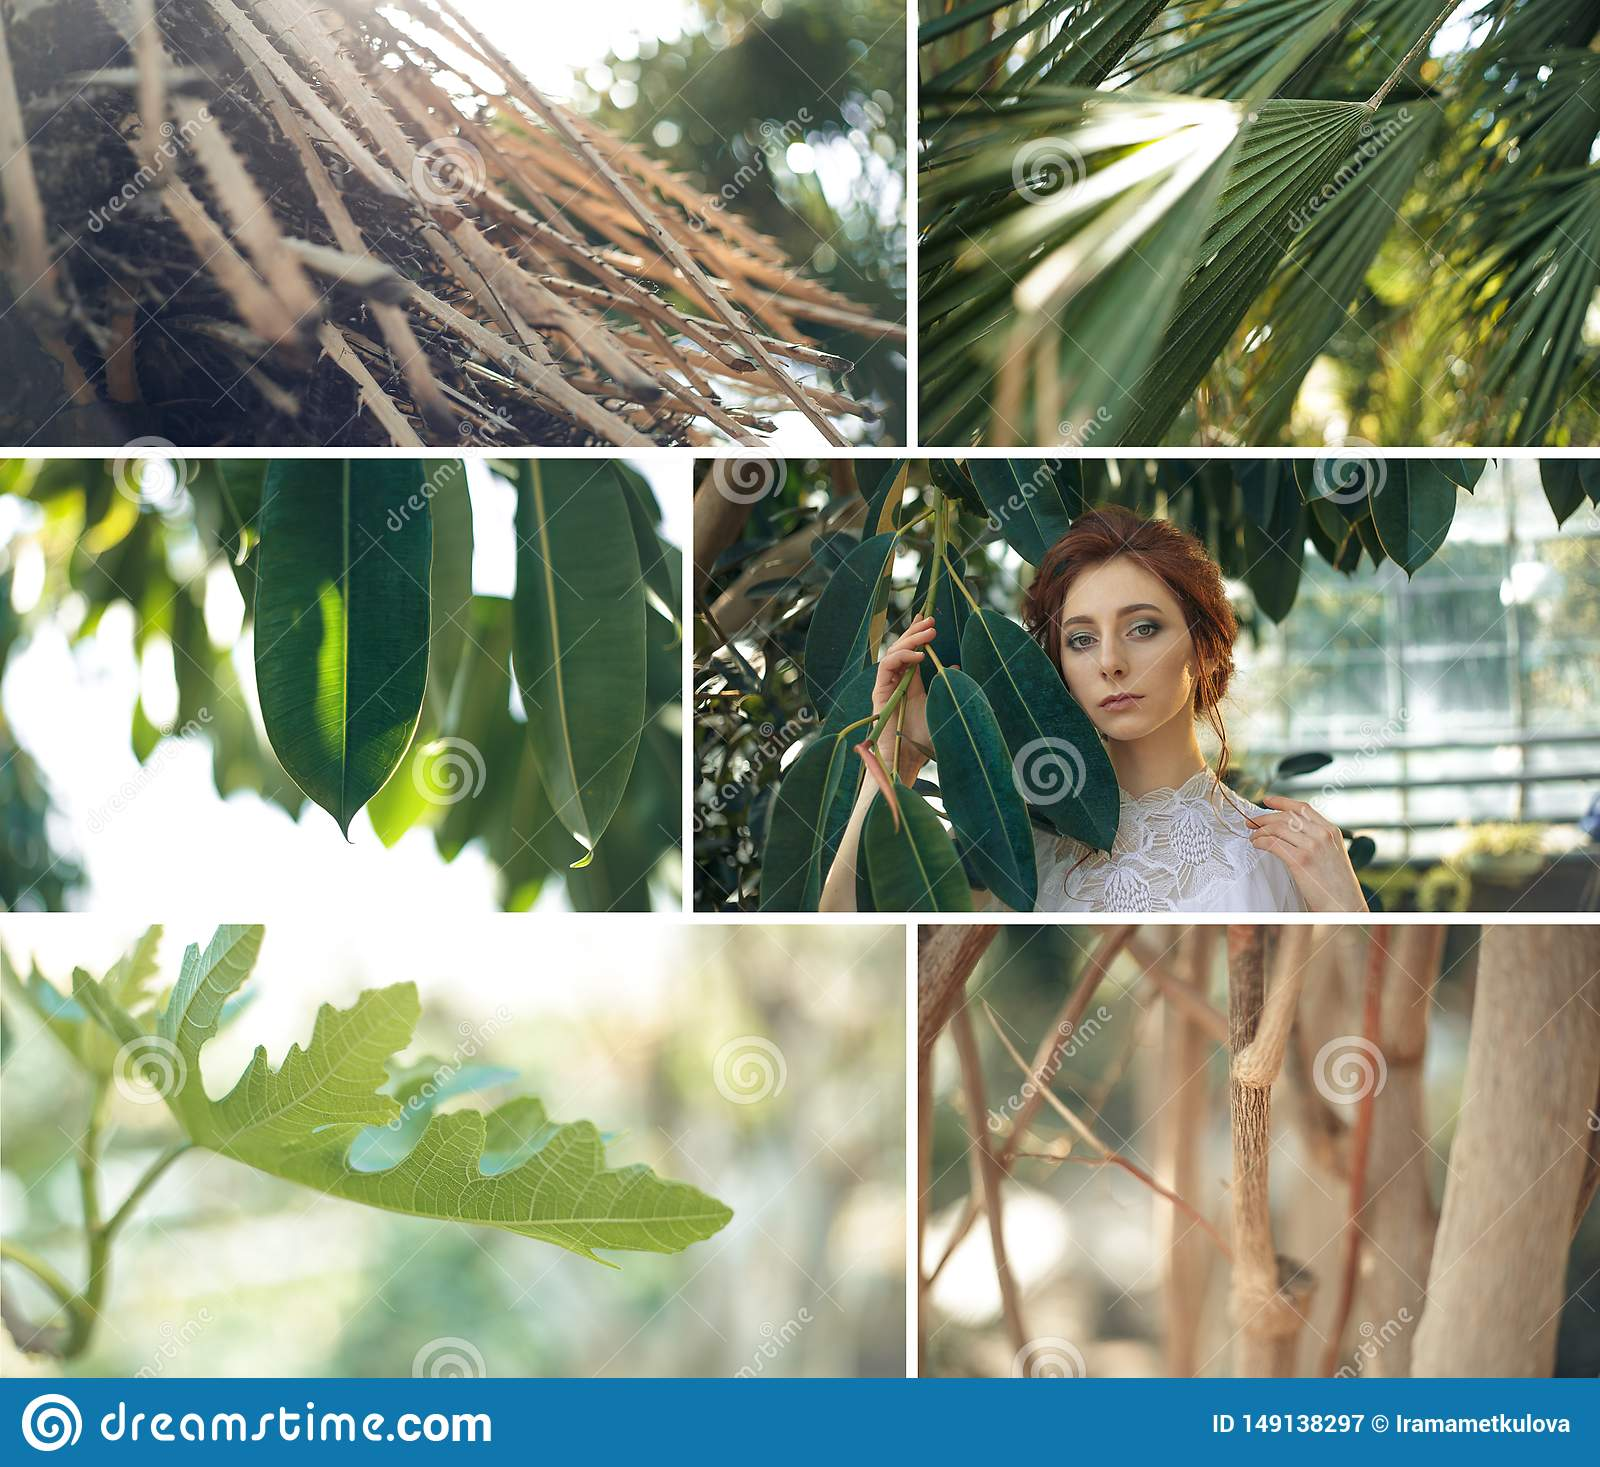 Tropic garden plants collage with red hair girl